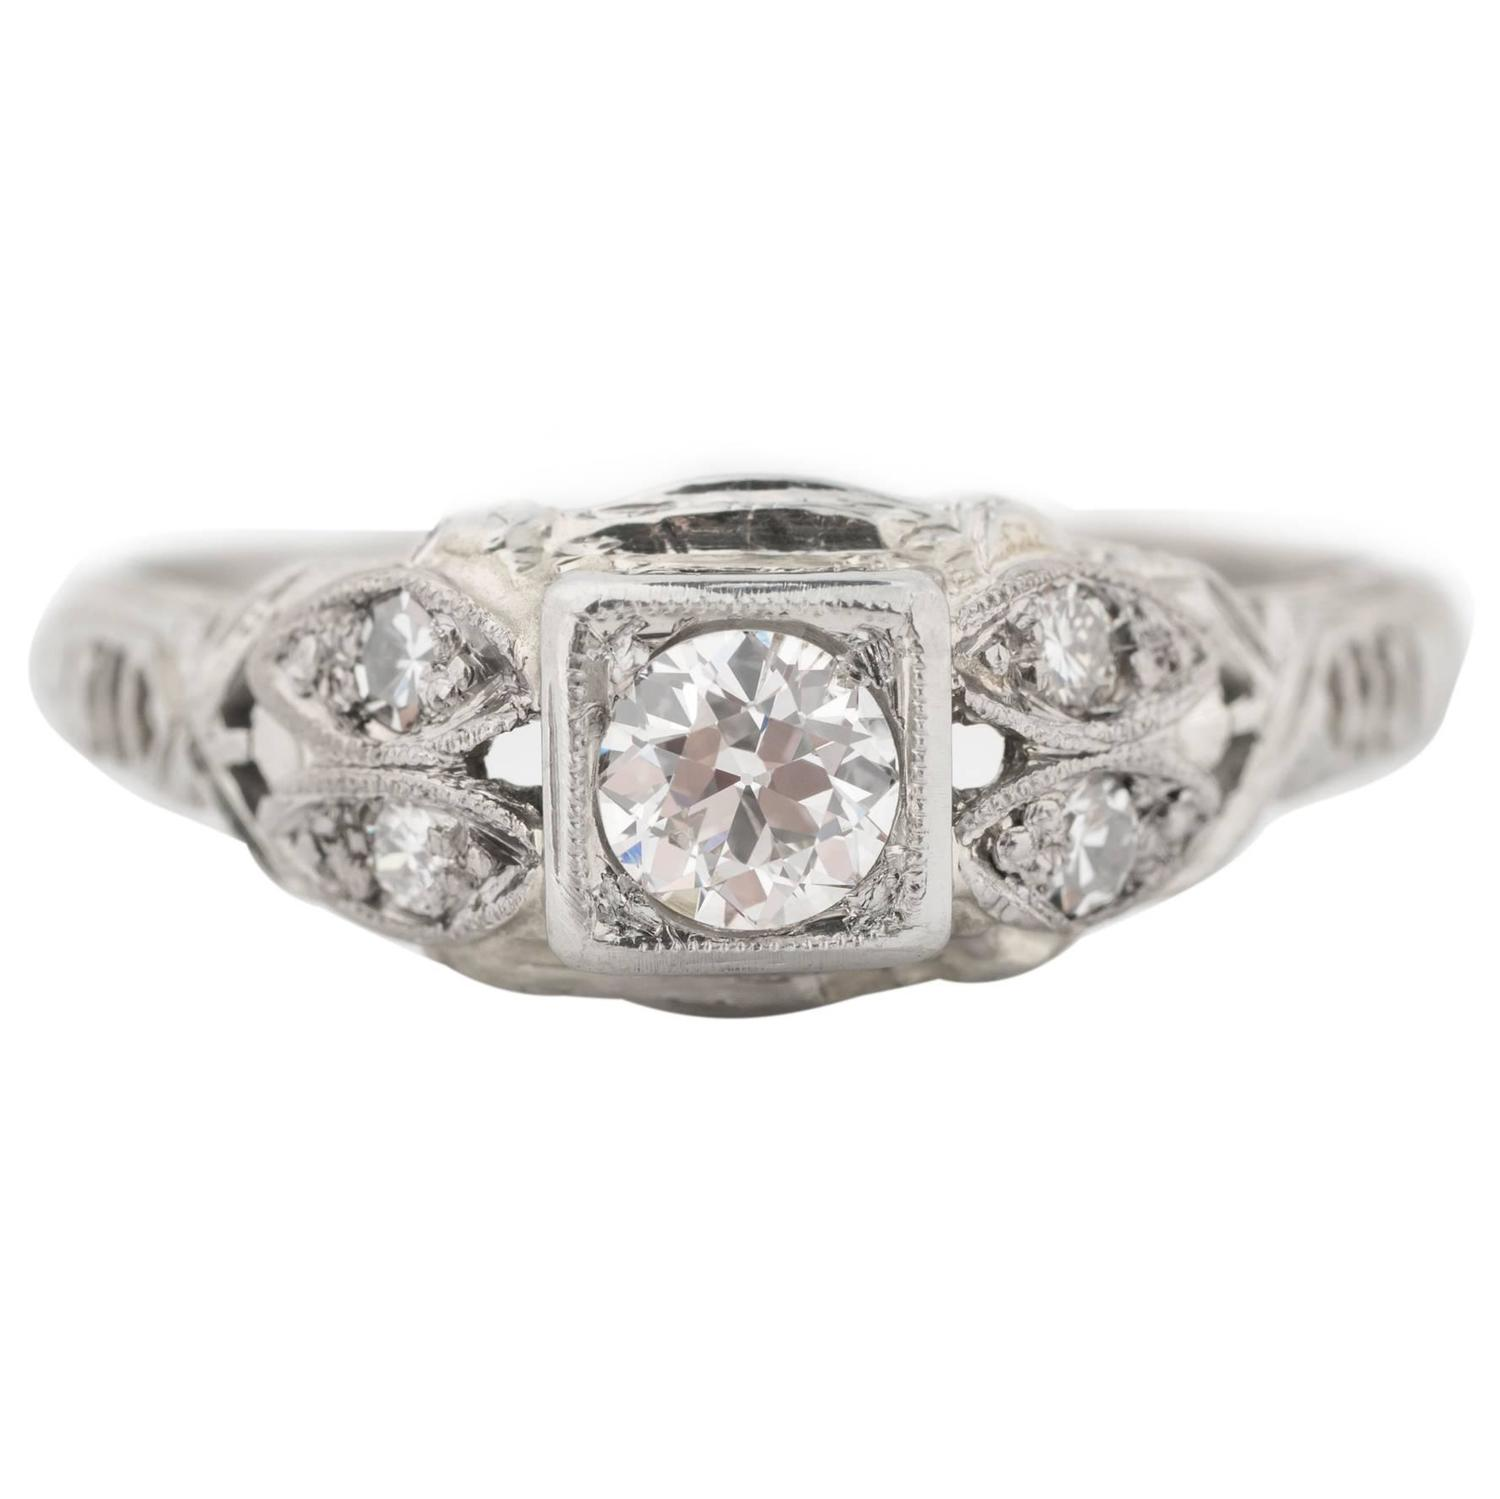 1920s intricate engagement ring for sale at 1stdibs